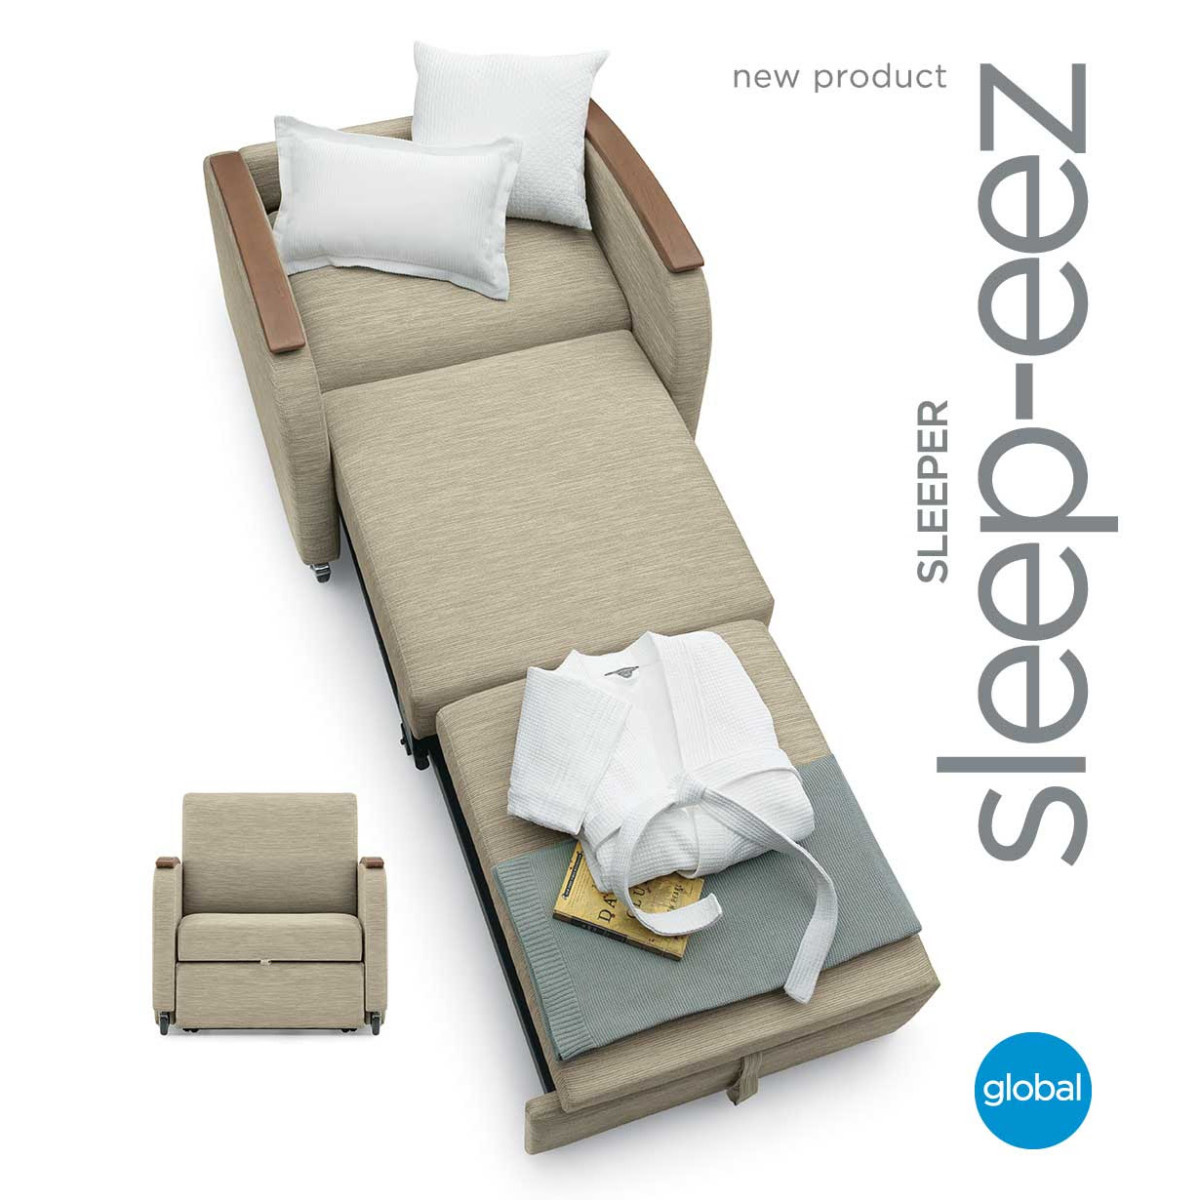 Awe Inspiring Sleep Eez Compact Sleeper Chair Sit Relax Or Rest In Dailytribune Chair Design For Home Dailytribuneorg